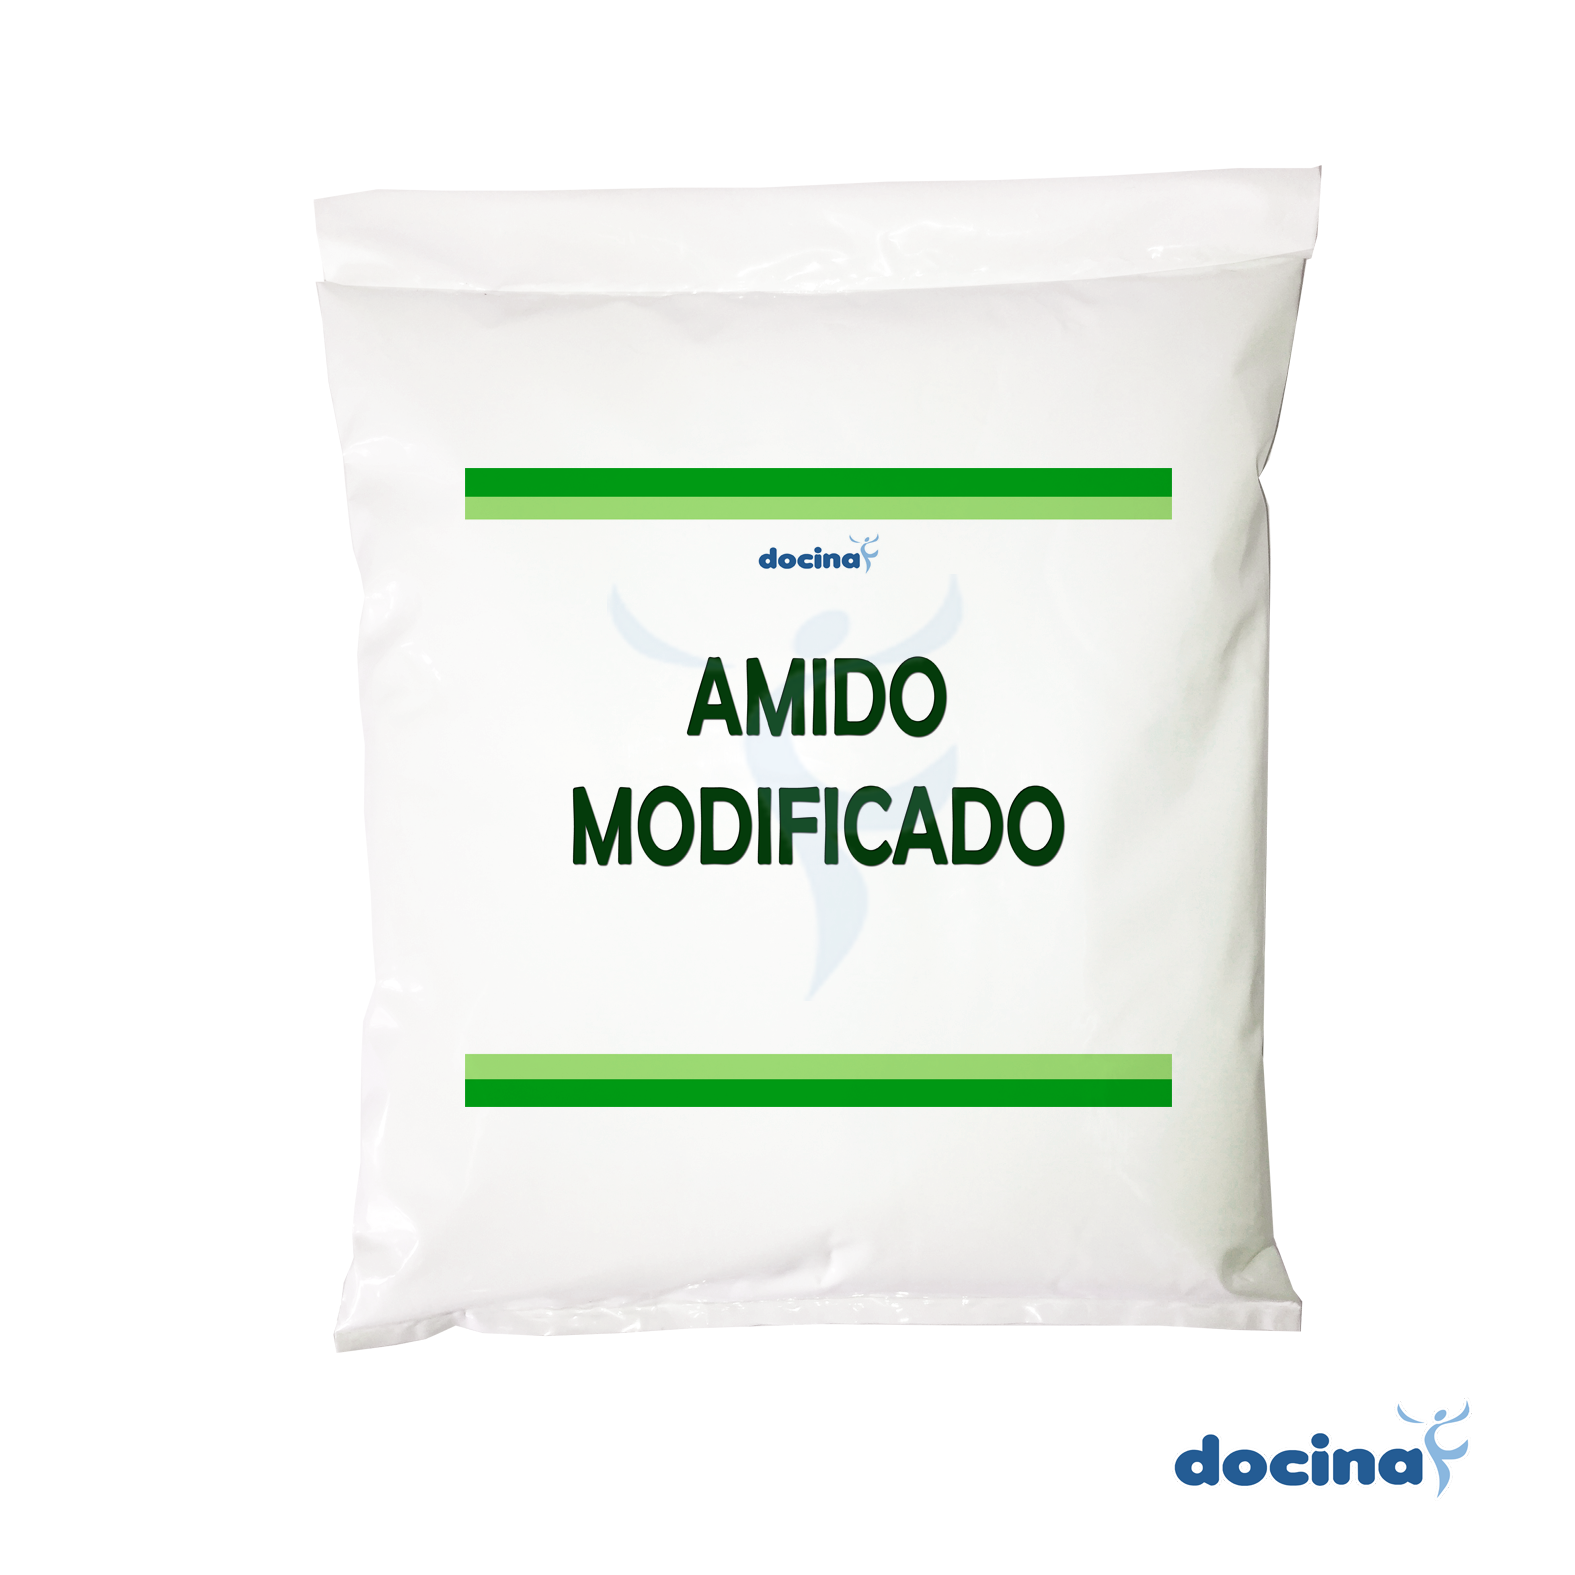 Amido Modificado